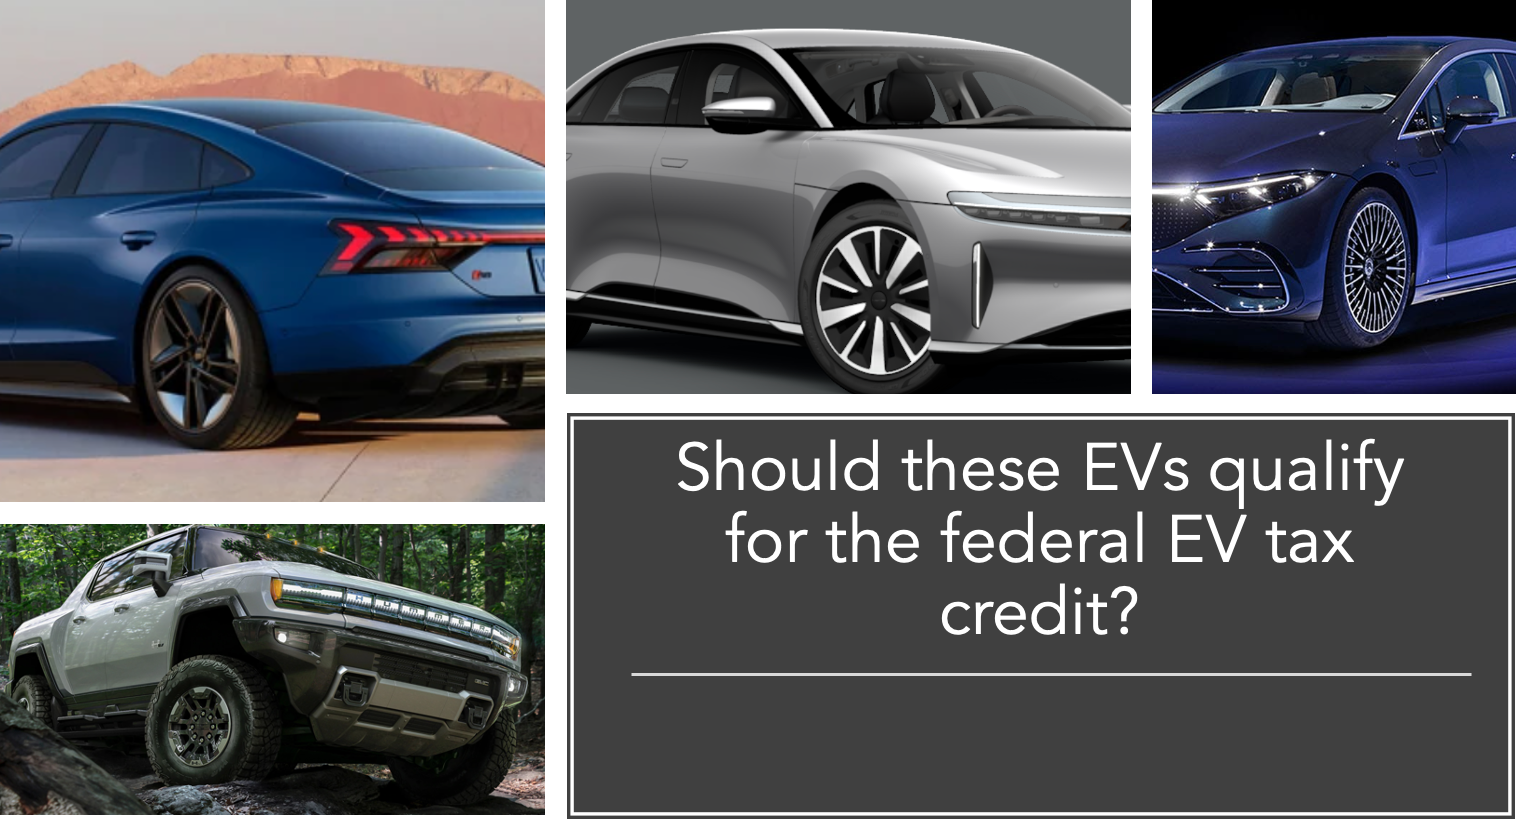 Should these EVs qualify for the federal EV tax credit?